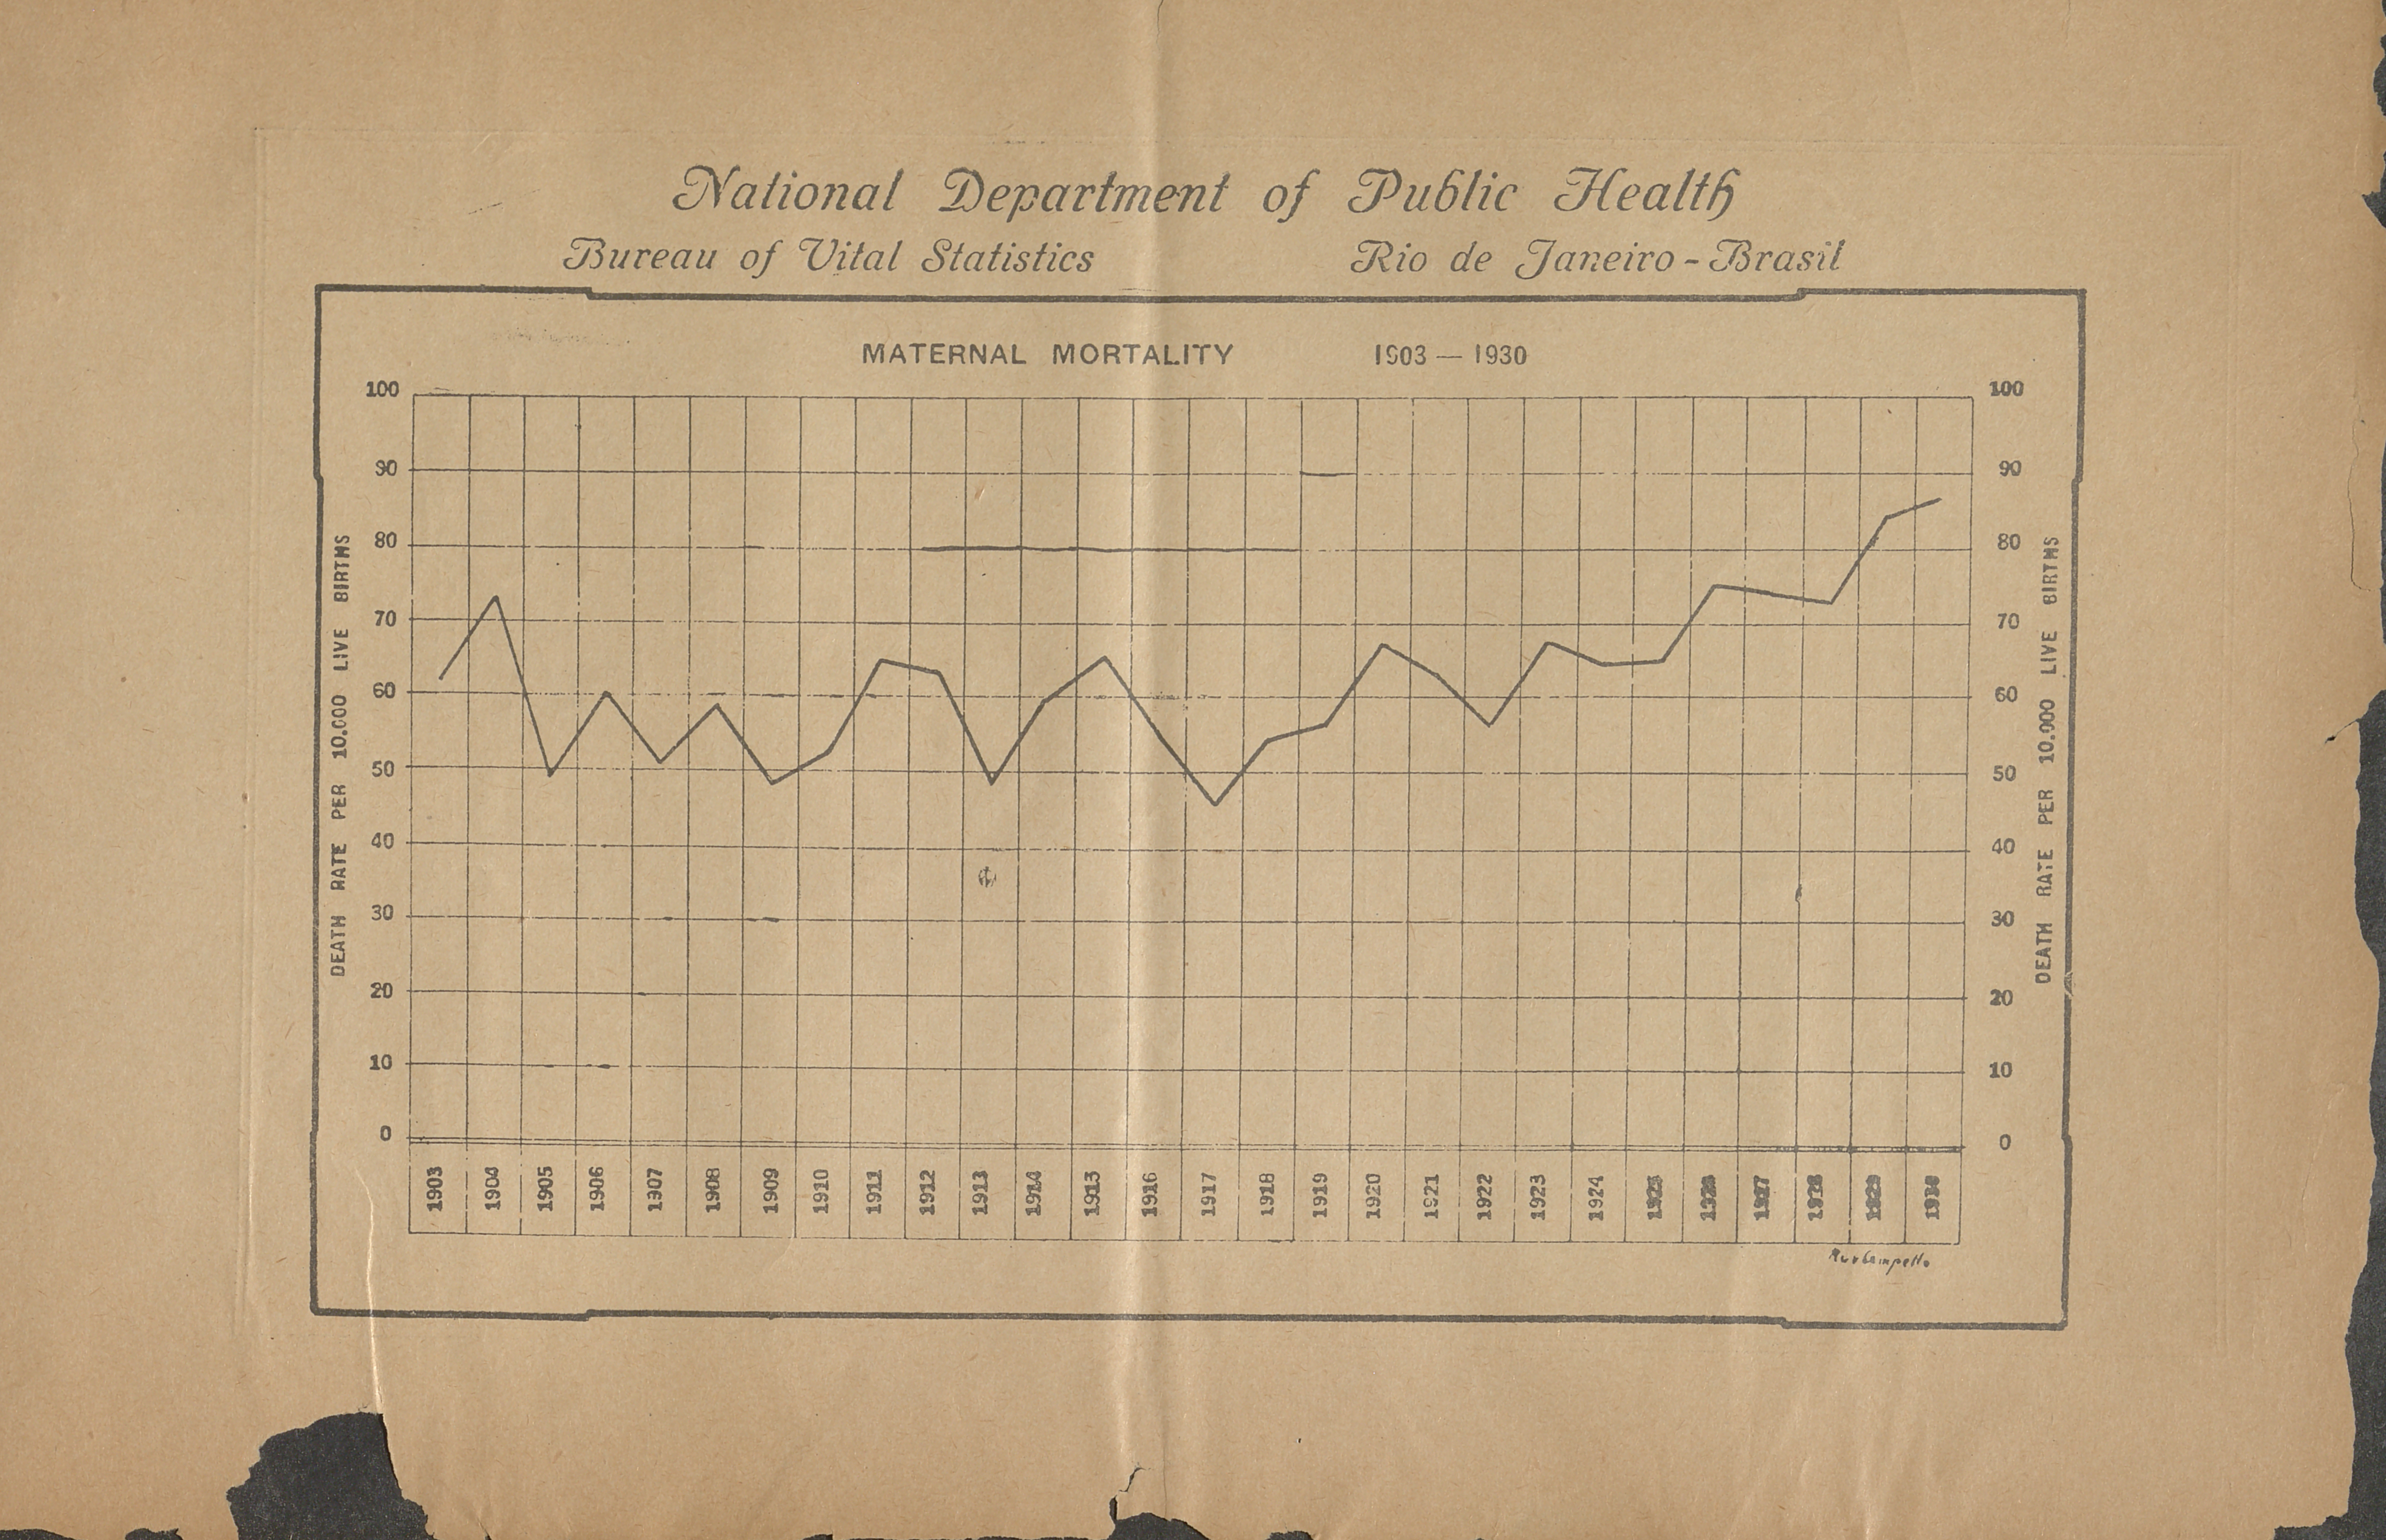 Maternal Mortality Chart from the National Department of Public Health Rio de Janerio-Brasil 1903-1930